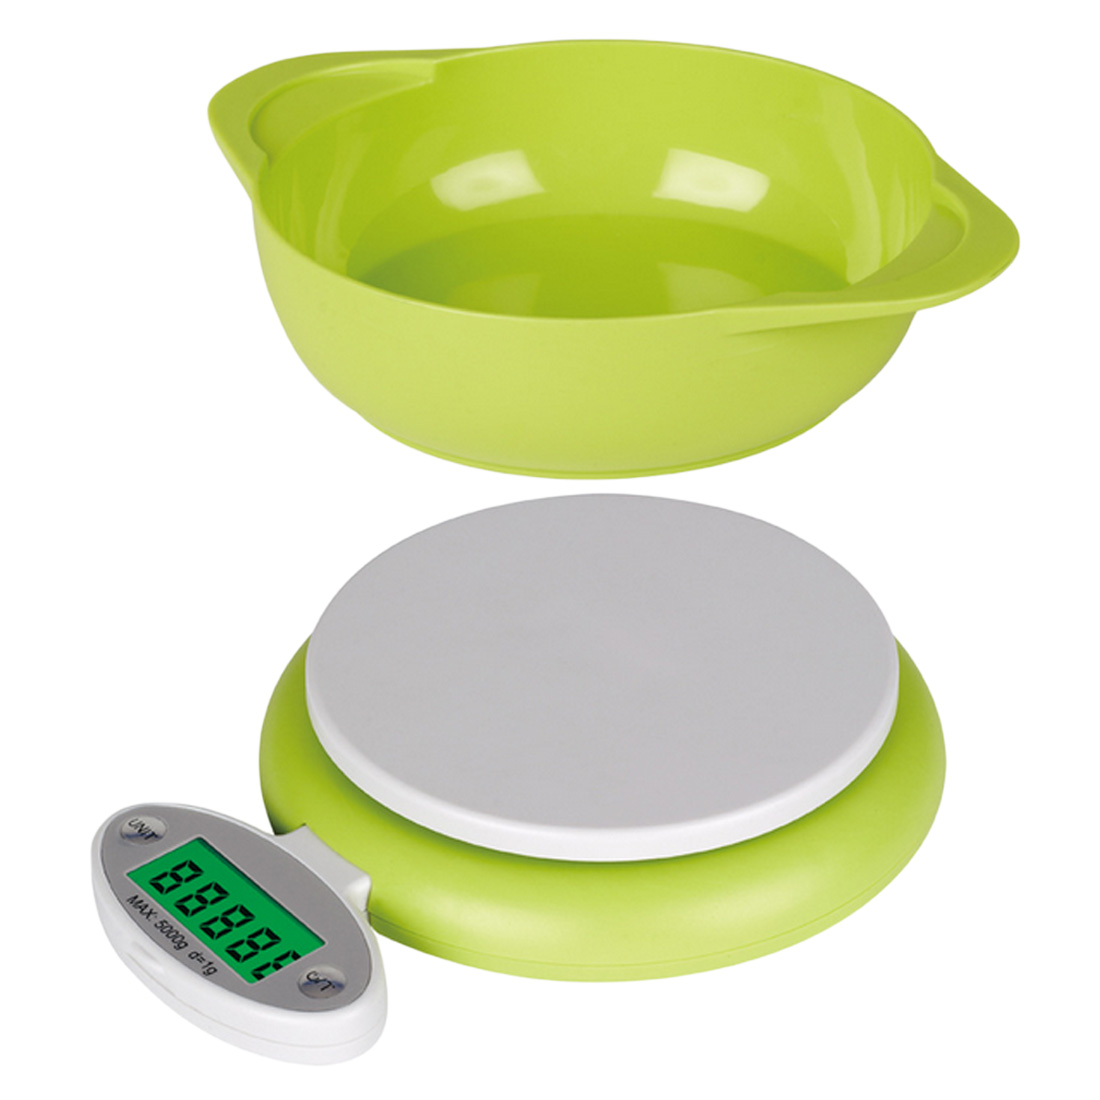 New Pop Practical 5KG/1g LCD Display Digital Scale Electronic Kitchen Food Diet Postal Scale Weight Tool with Tray Green 5pcs imported tungsten carbide right hand thread cnc rotary burrsspiral end mill pcb engraving router bits shank ced 1 0mm